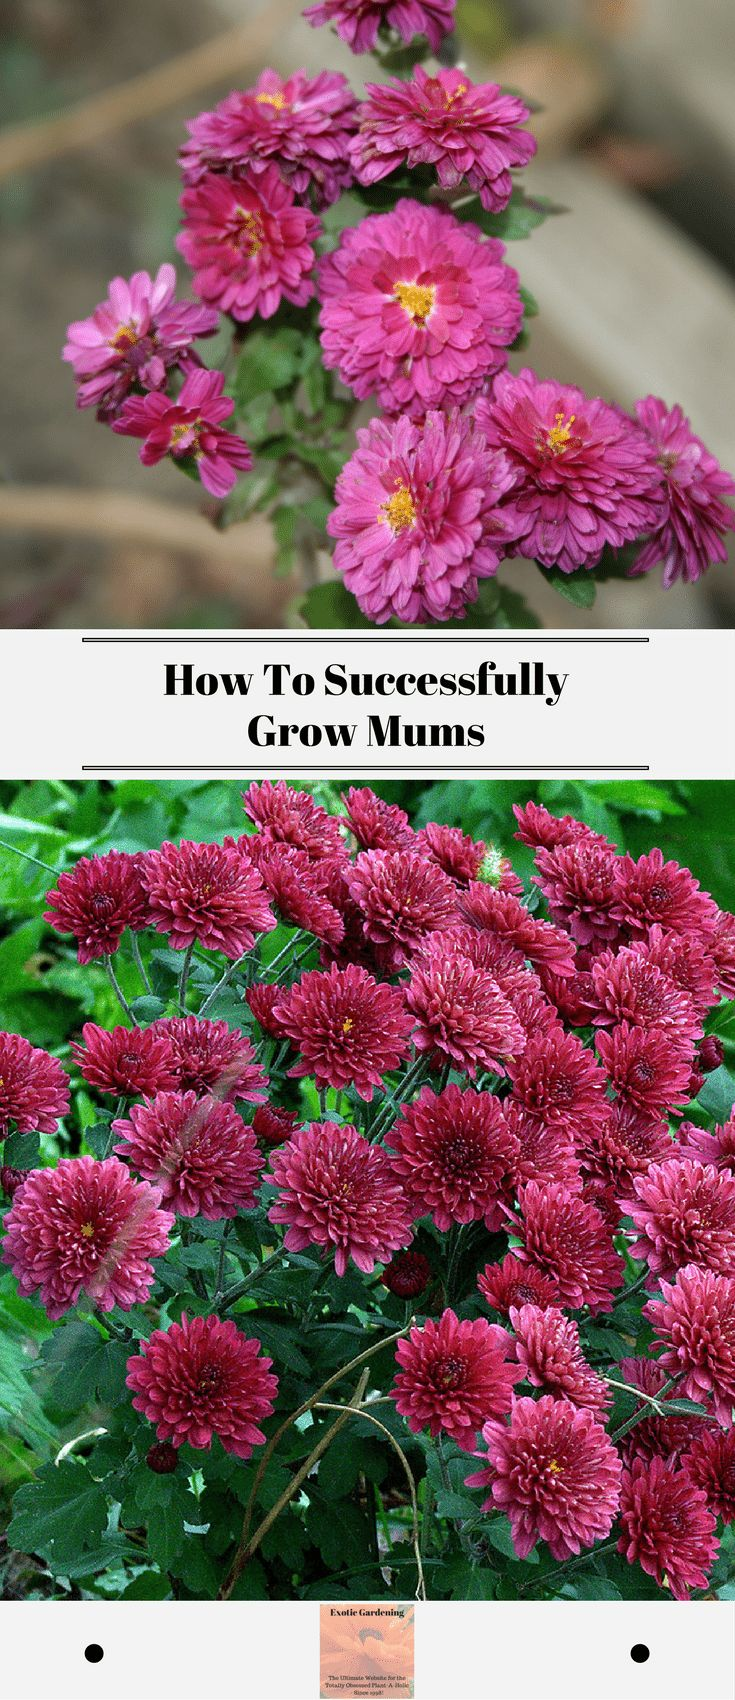 799 best beautiful flowers images on pinterest flower beds flower chrysanthemums commonly referred to as mums are a beautiful fall blooming plant many people izmirmasajfo Gallery